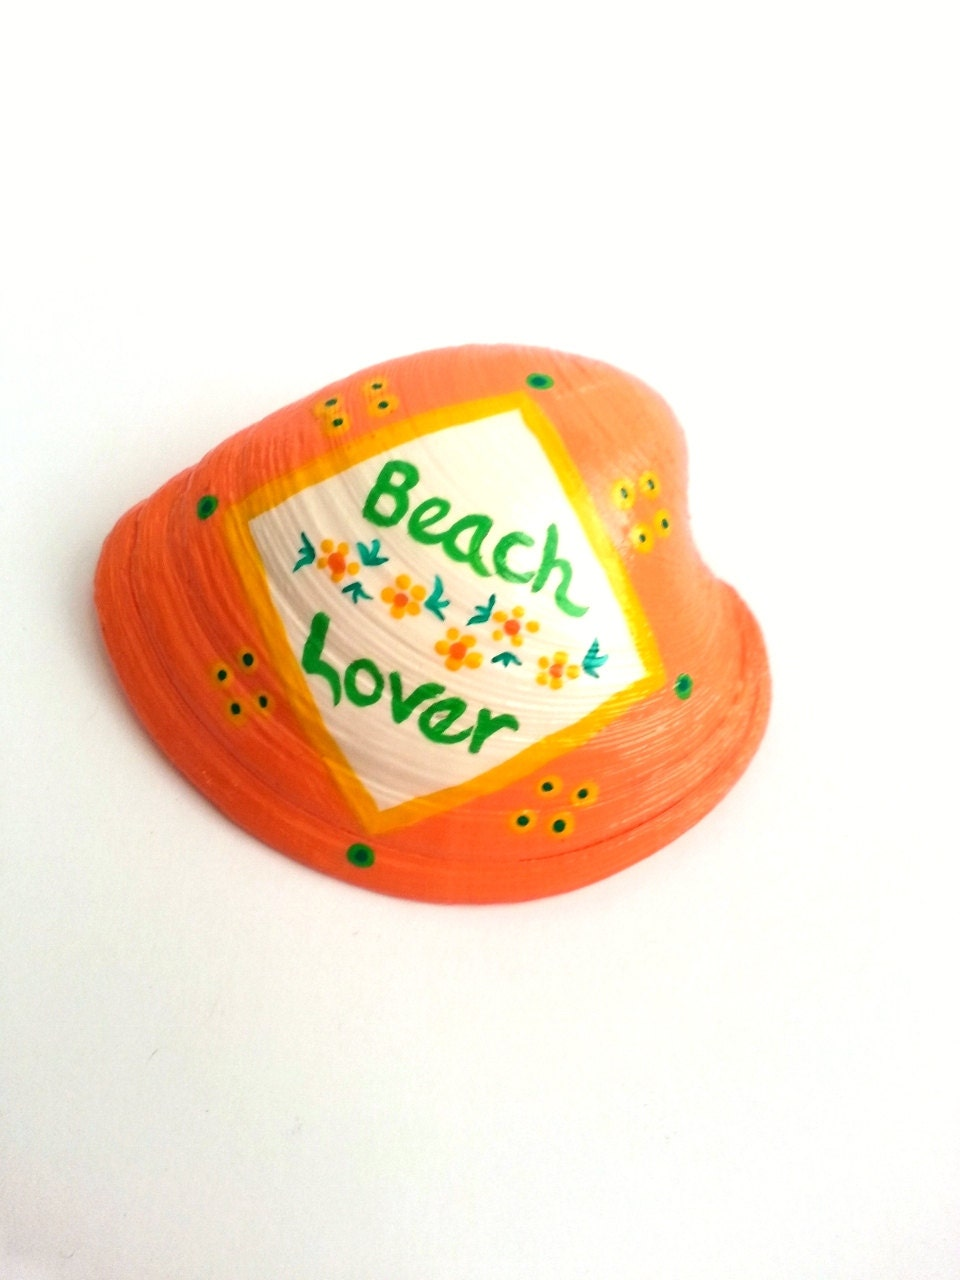 Clamshell, hand painted seashell art in bright peach and white - beachseacrafts